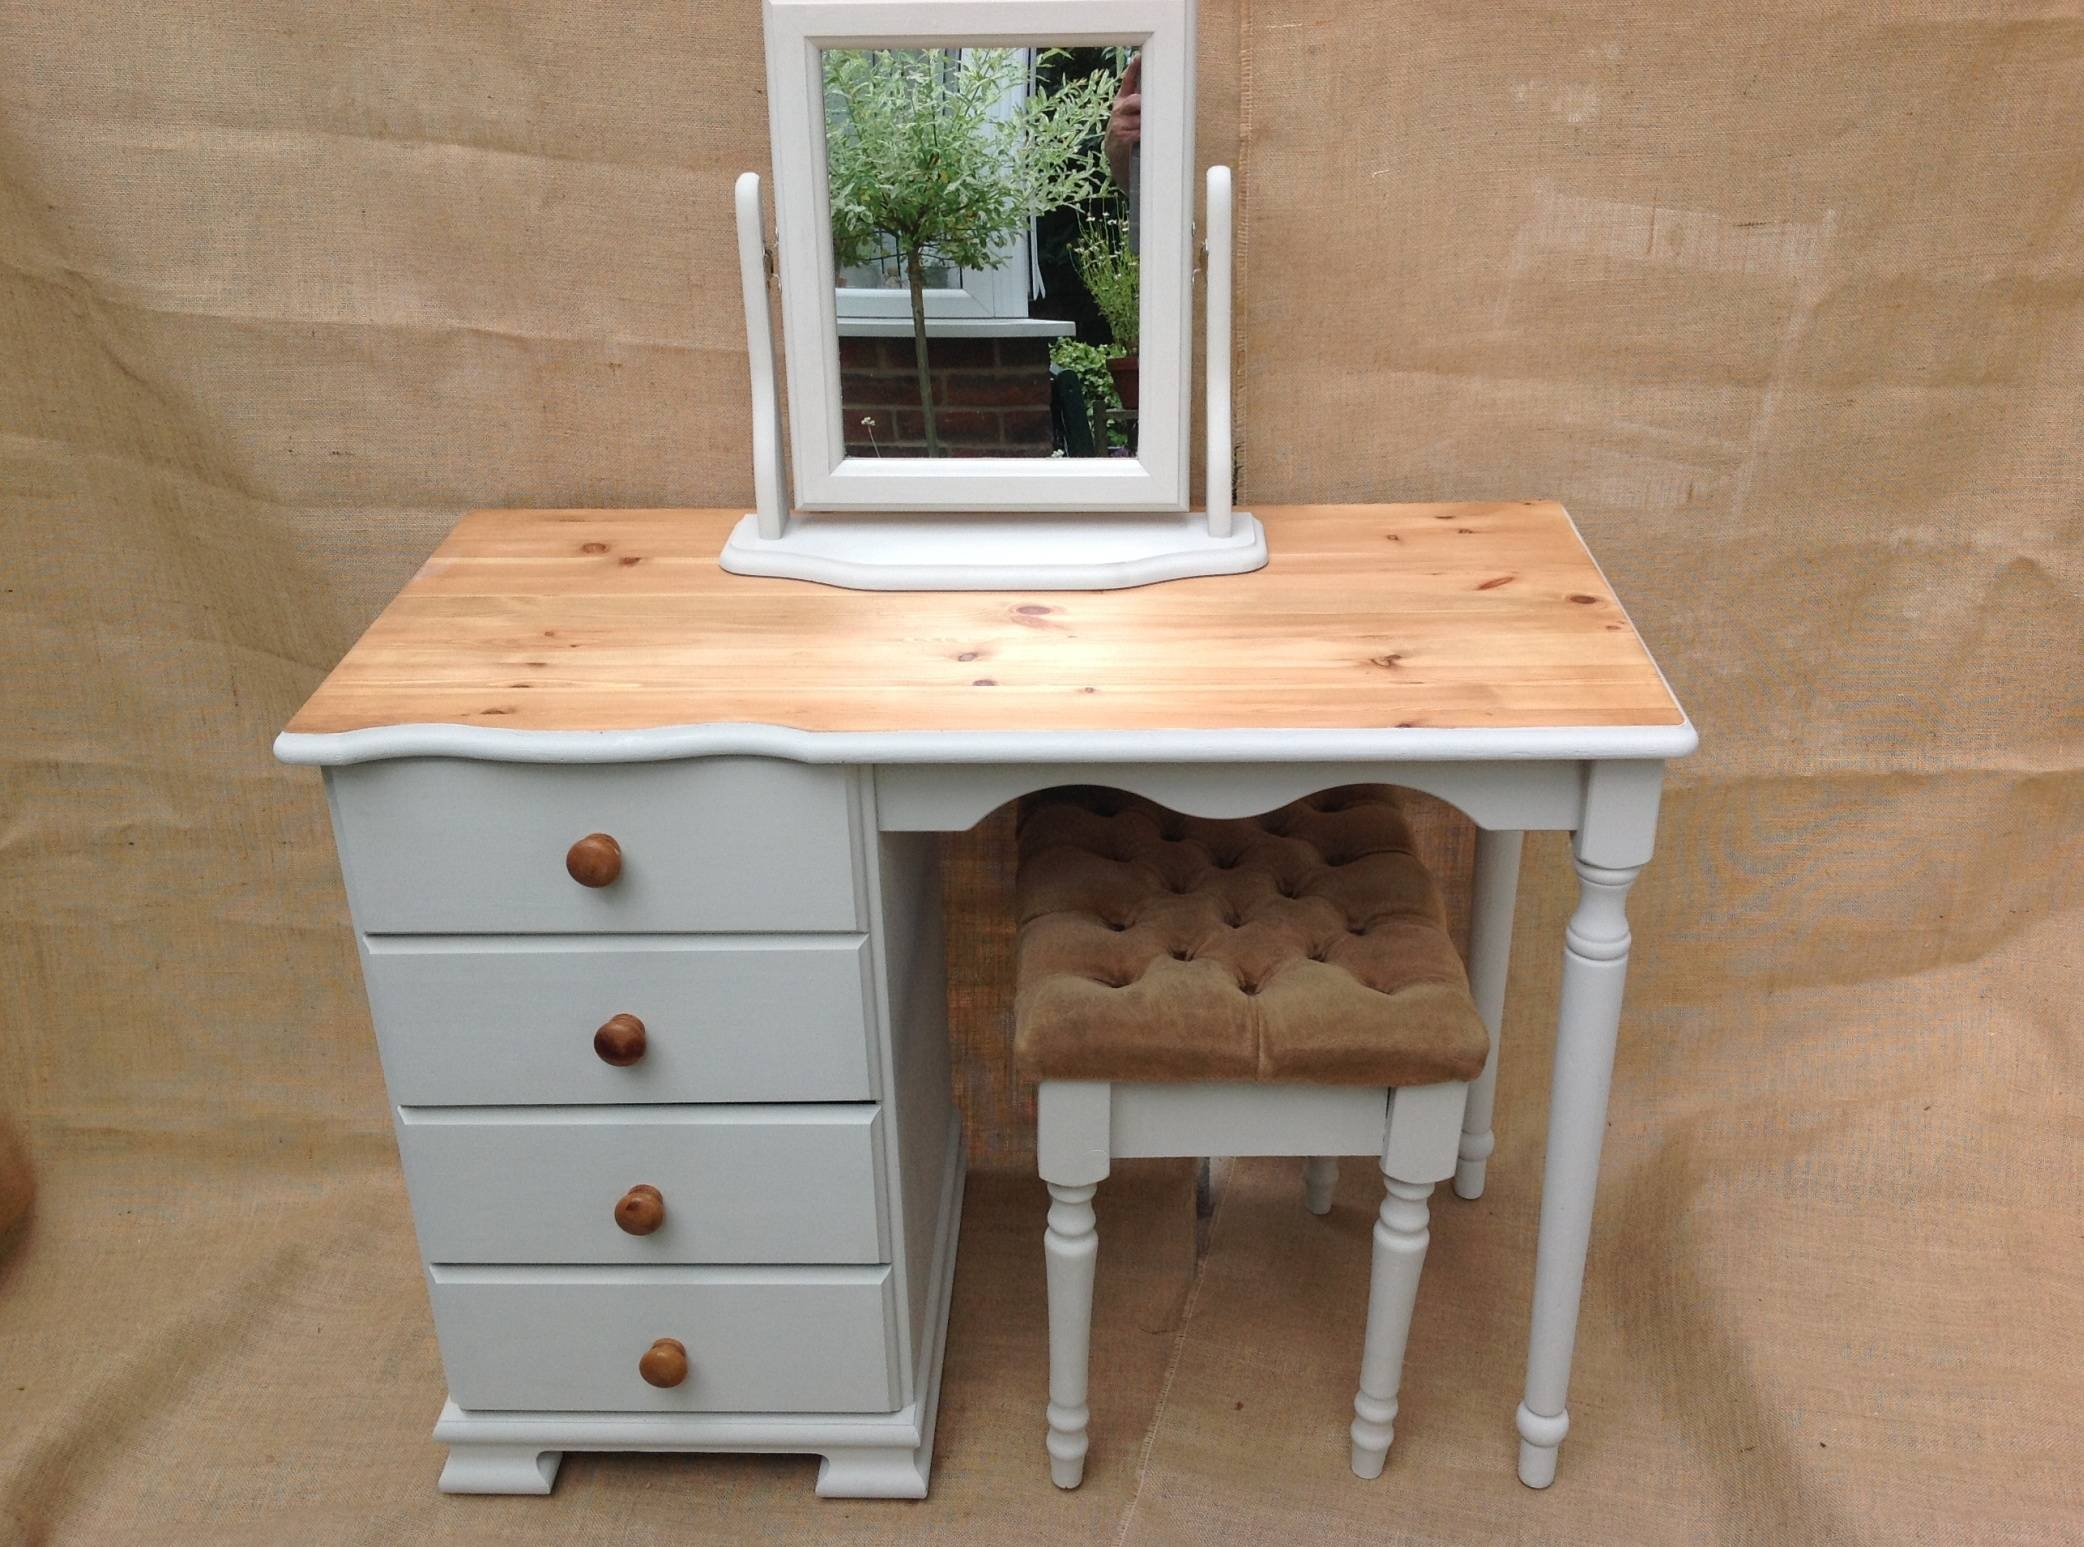 Shabby Chic Furniture In Farnborough Camberley Frimley inside Shabby Chic Pine Wardrobes (Image 12 of 15)